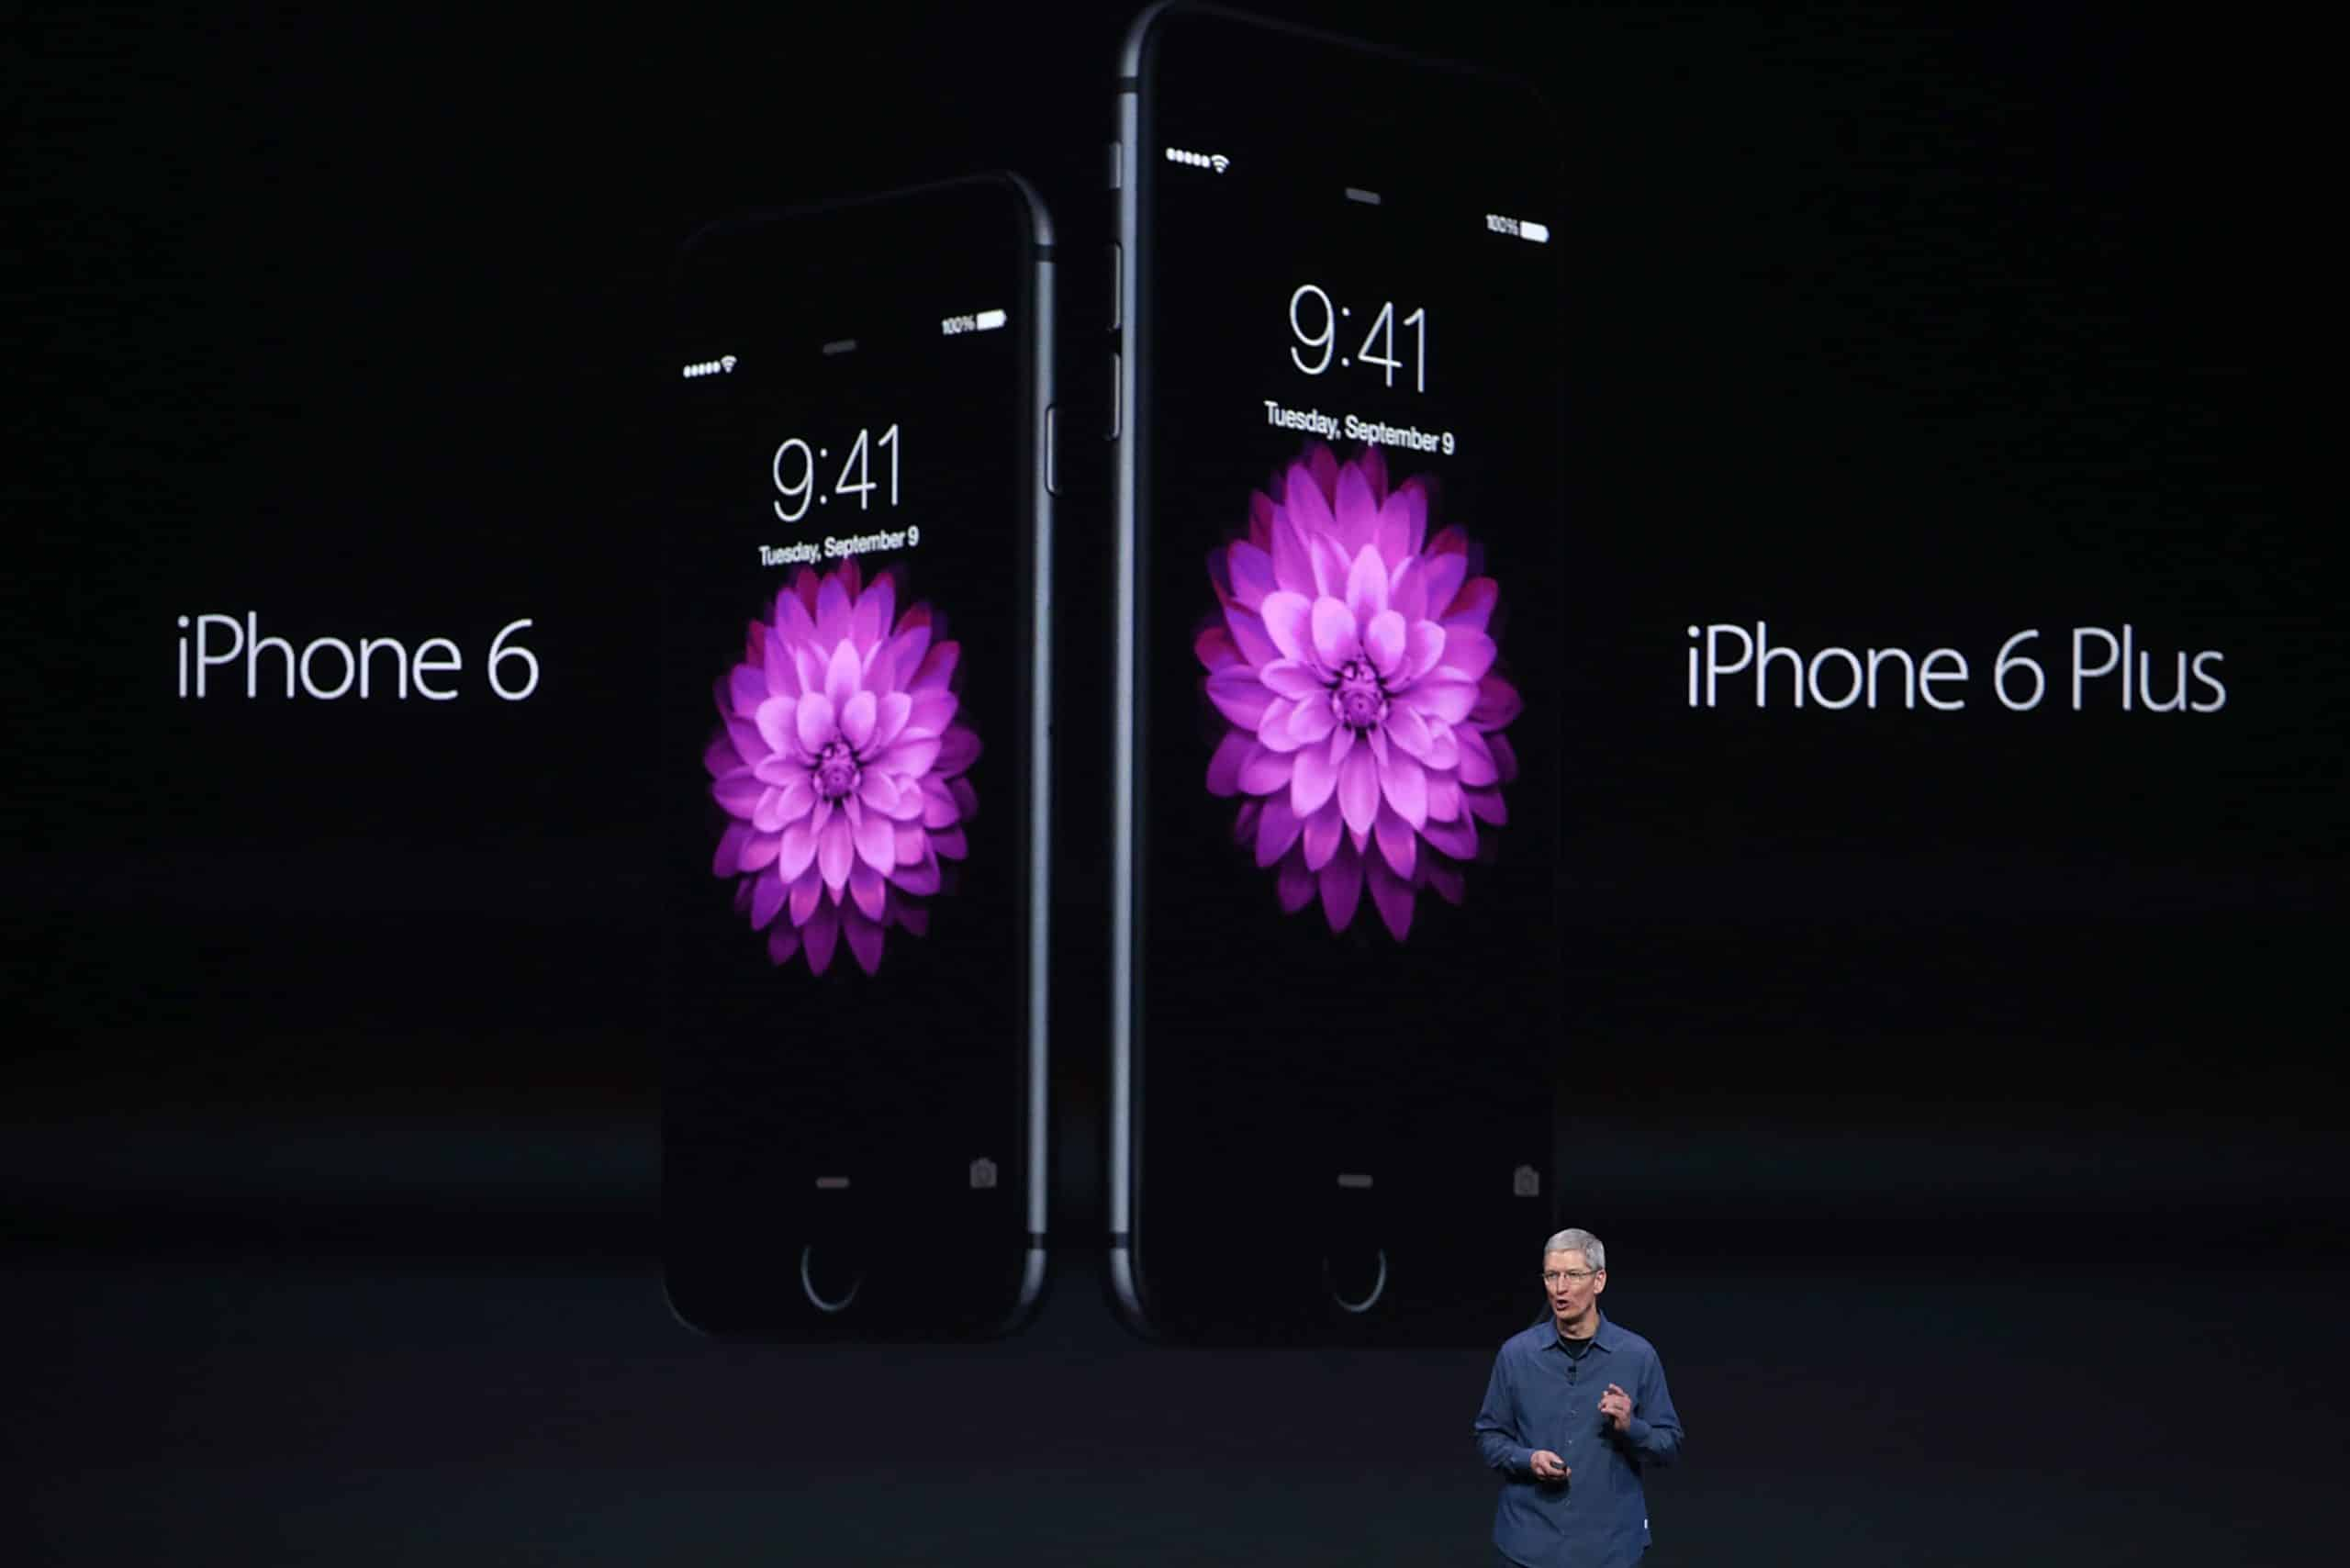 iPhone 6: The experimental phone of 2014